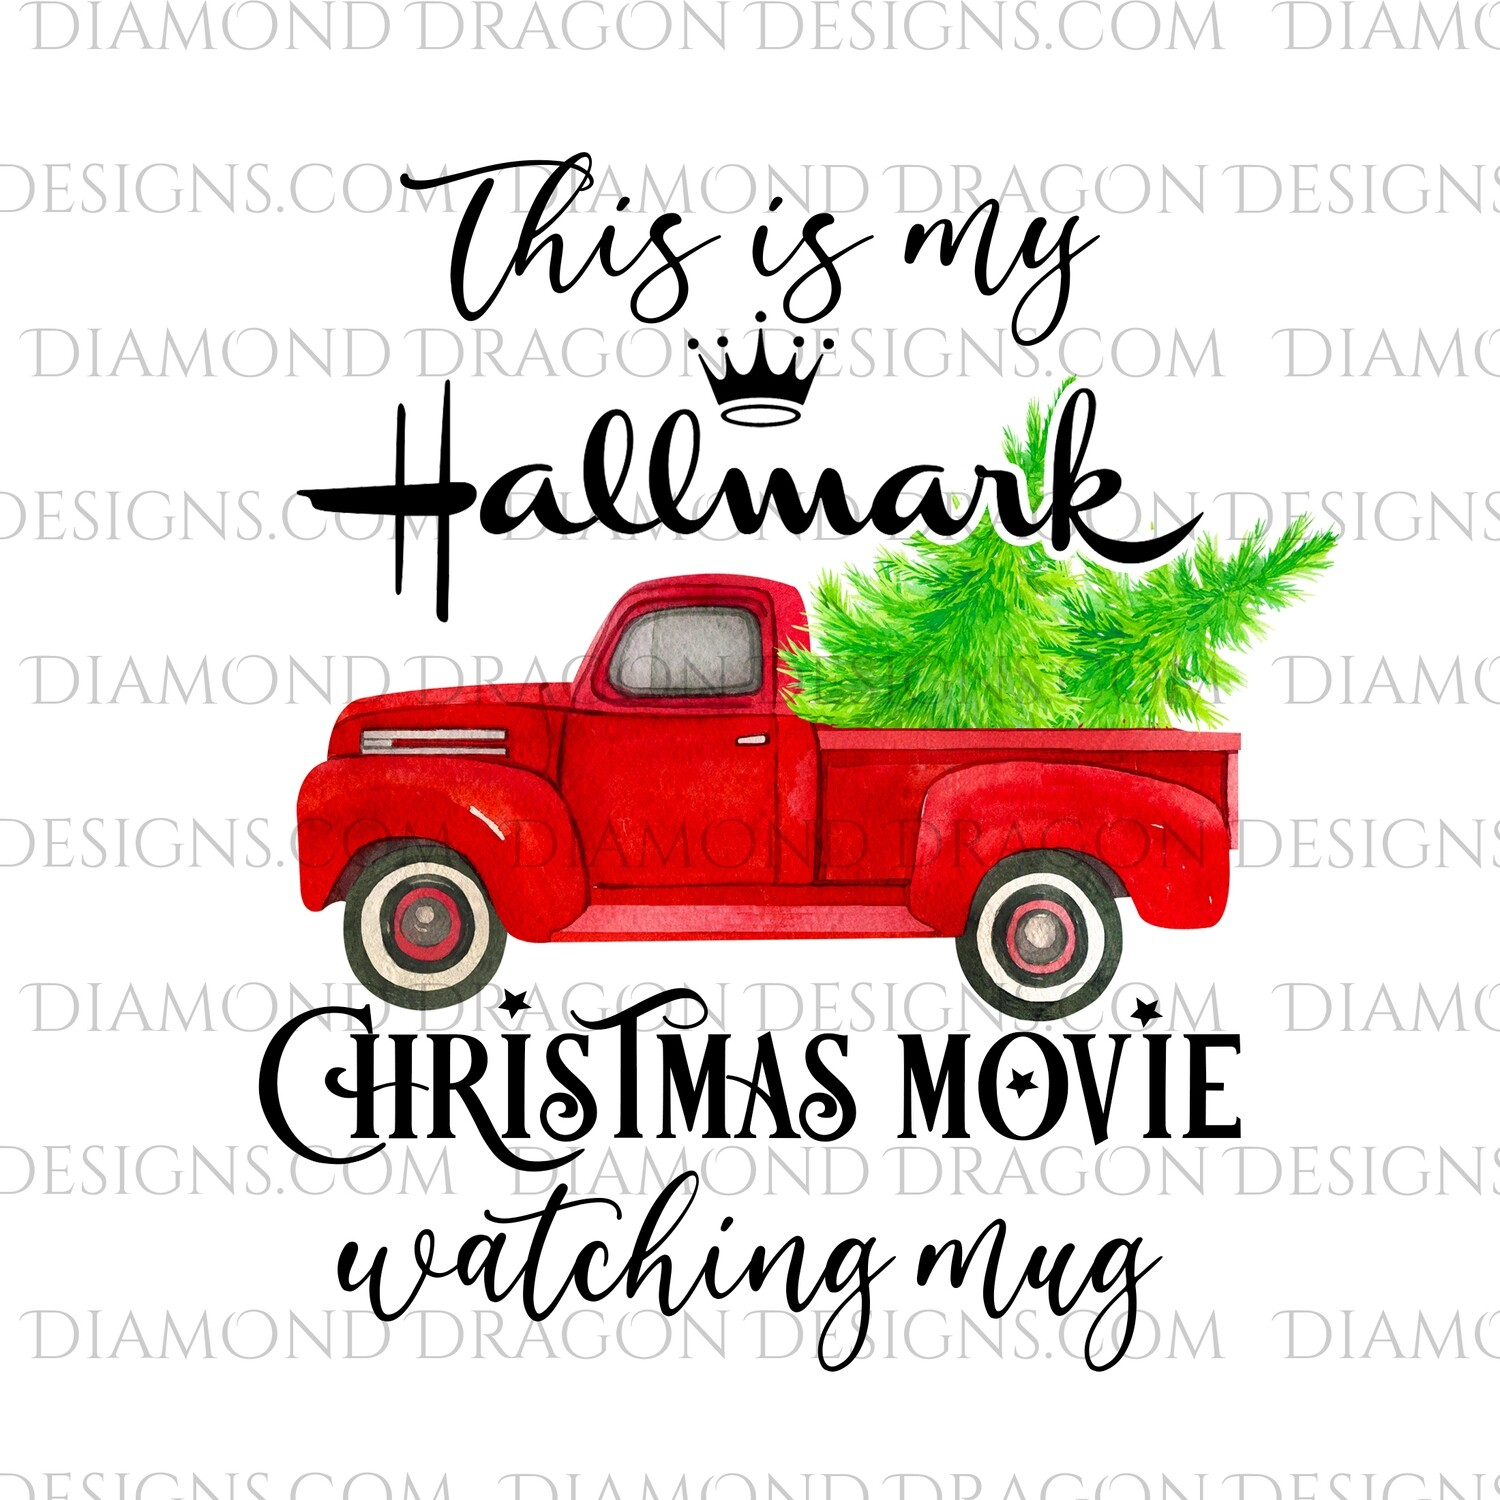 Christmas - Red Truck, Christmas Tree, Hallmark Christmas Movie Watching Mug, Red Vintage Truck, Digital Image